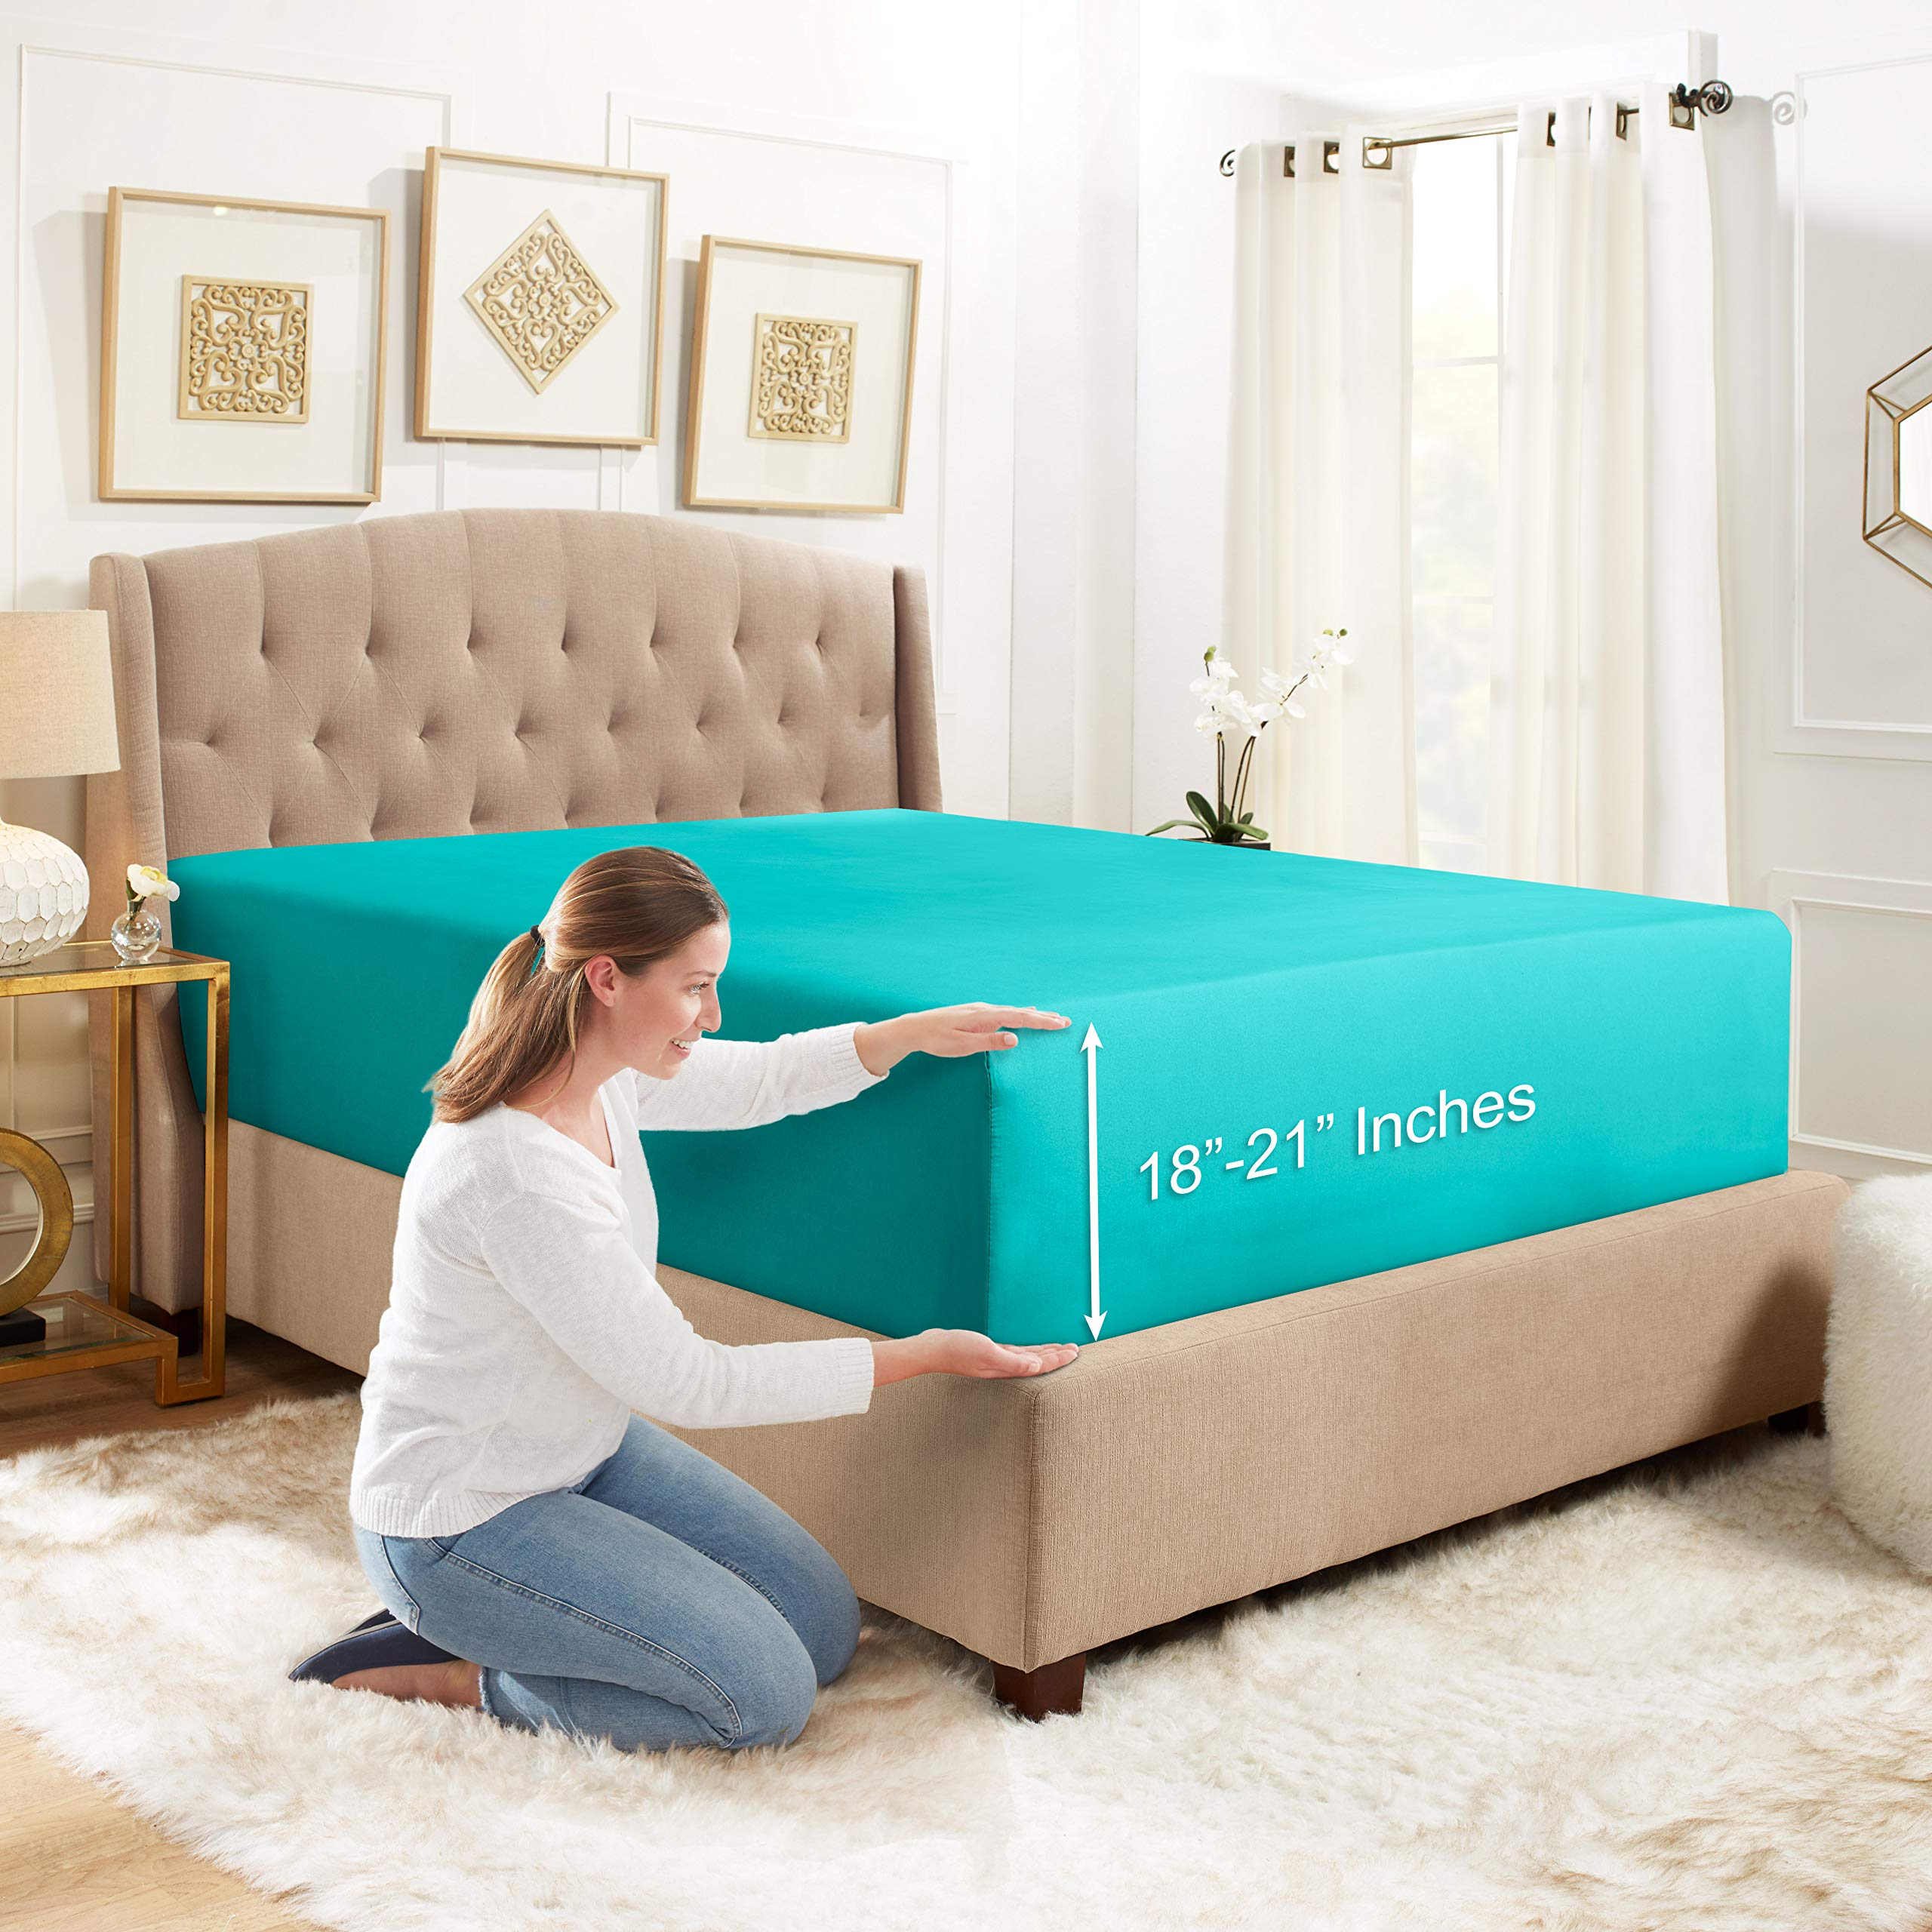 Empyrean Bedding Perfectly Mattresses Exclusive